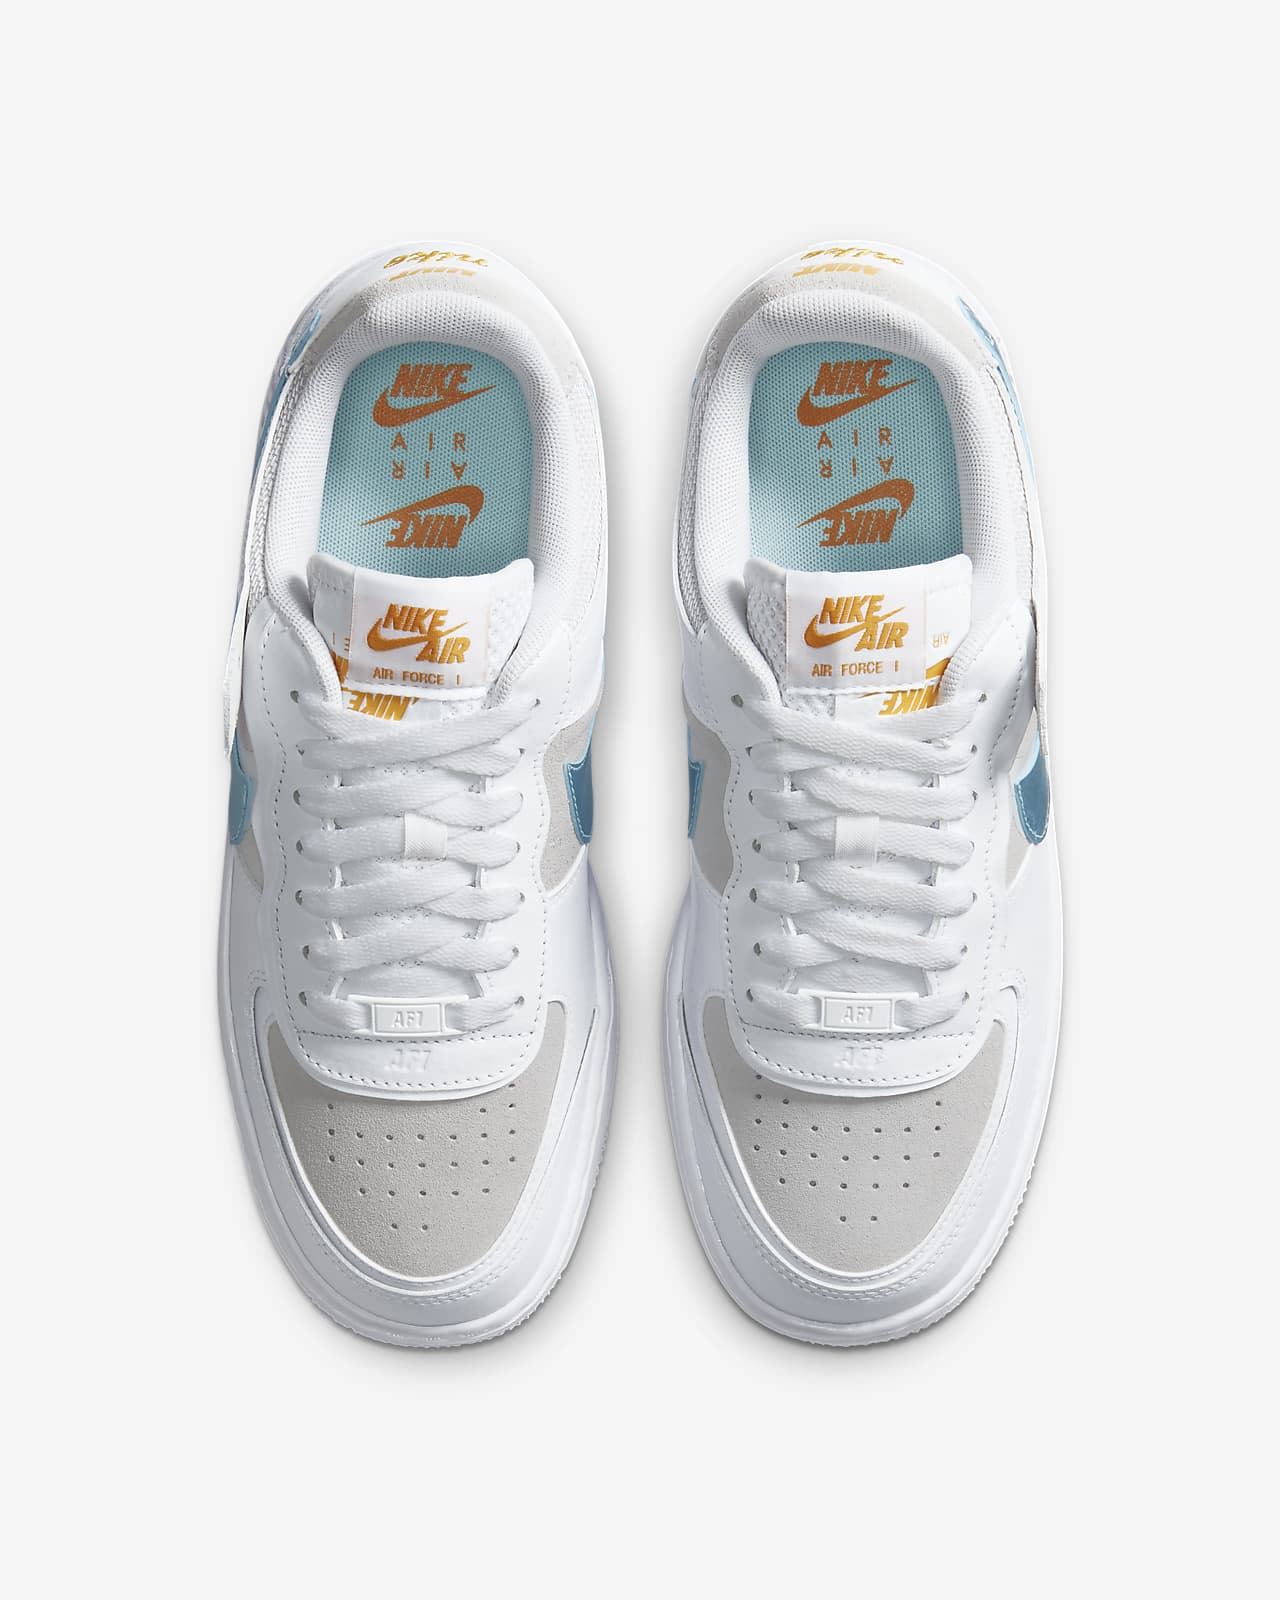 Nike Air Force 1 Shadow Women S Shoe Nike Jp Dropping in 1982, the nike air force 1 sneaker revolutionised basketball trainers forever. nike air force 1 shadow women s shoe